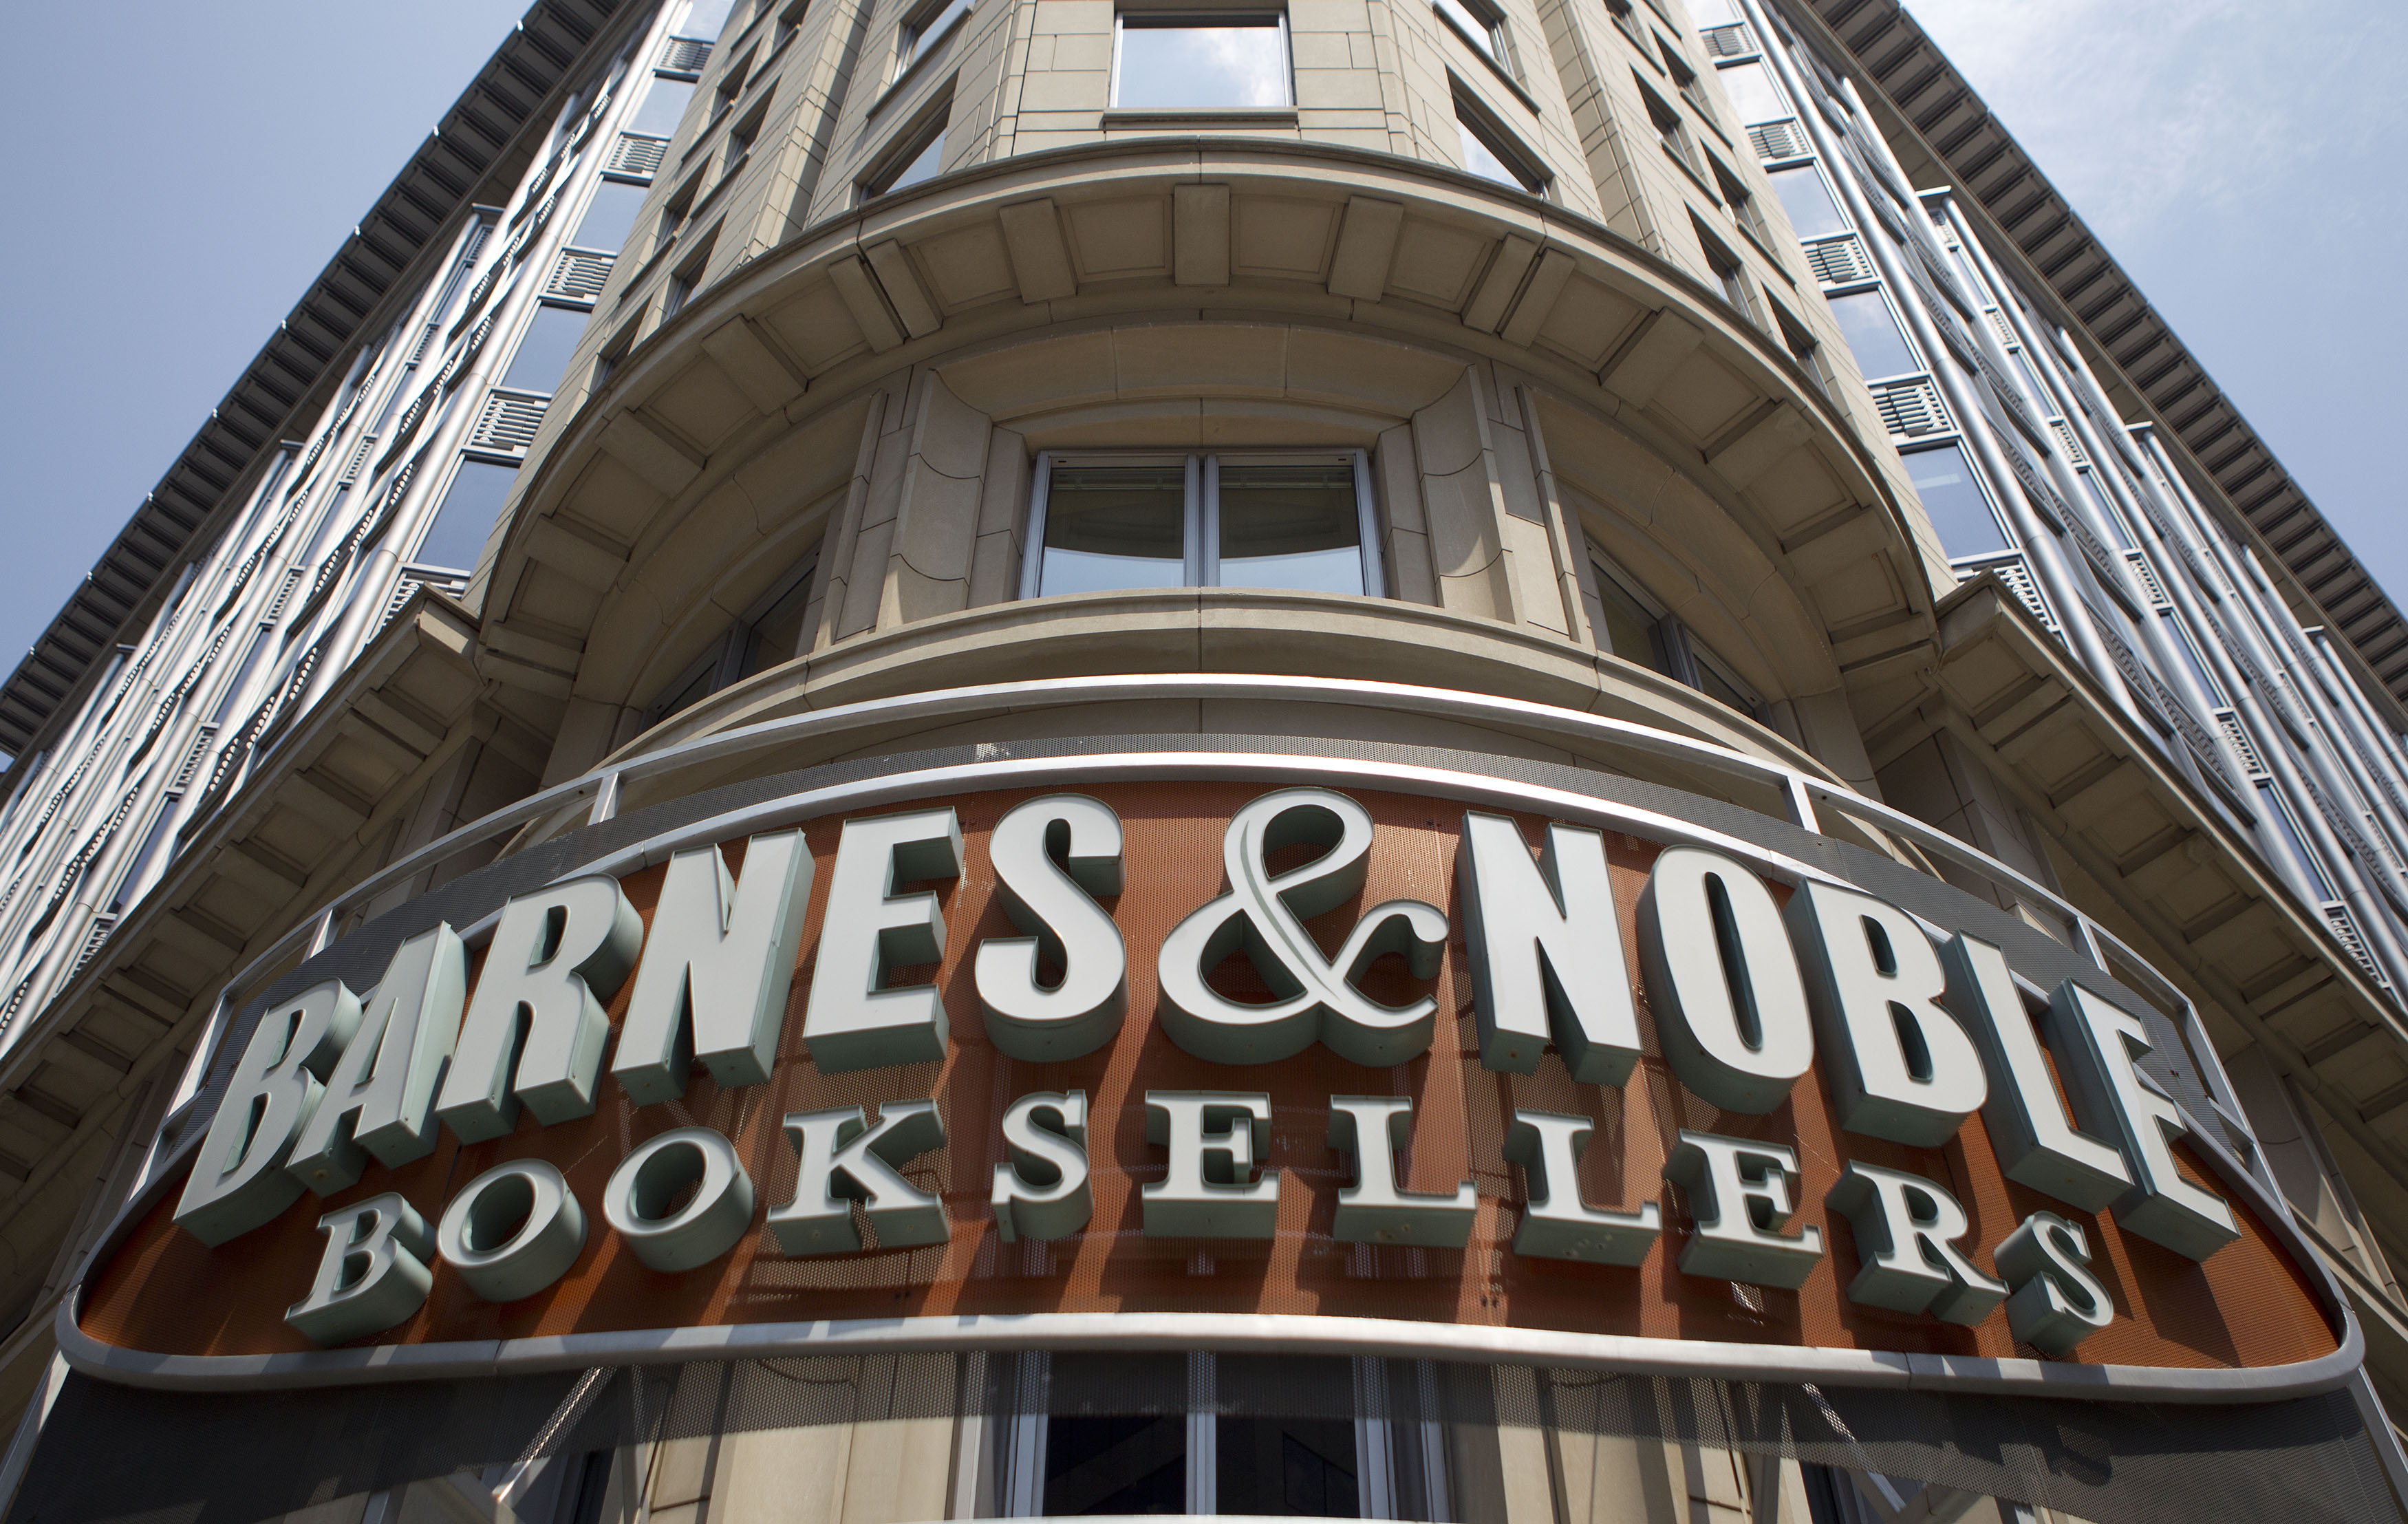 The Barnes & Noble logo hangs outside a store in Washington, D.C., U.S., on Thursday, Aug. 5, 2010.